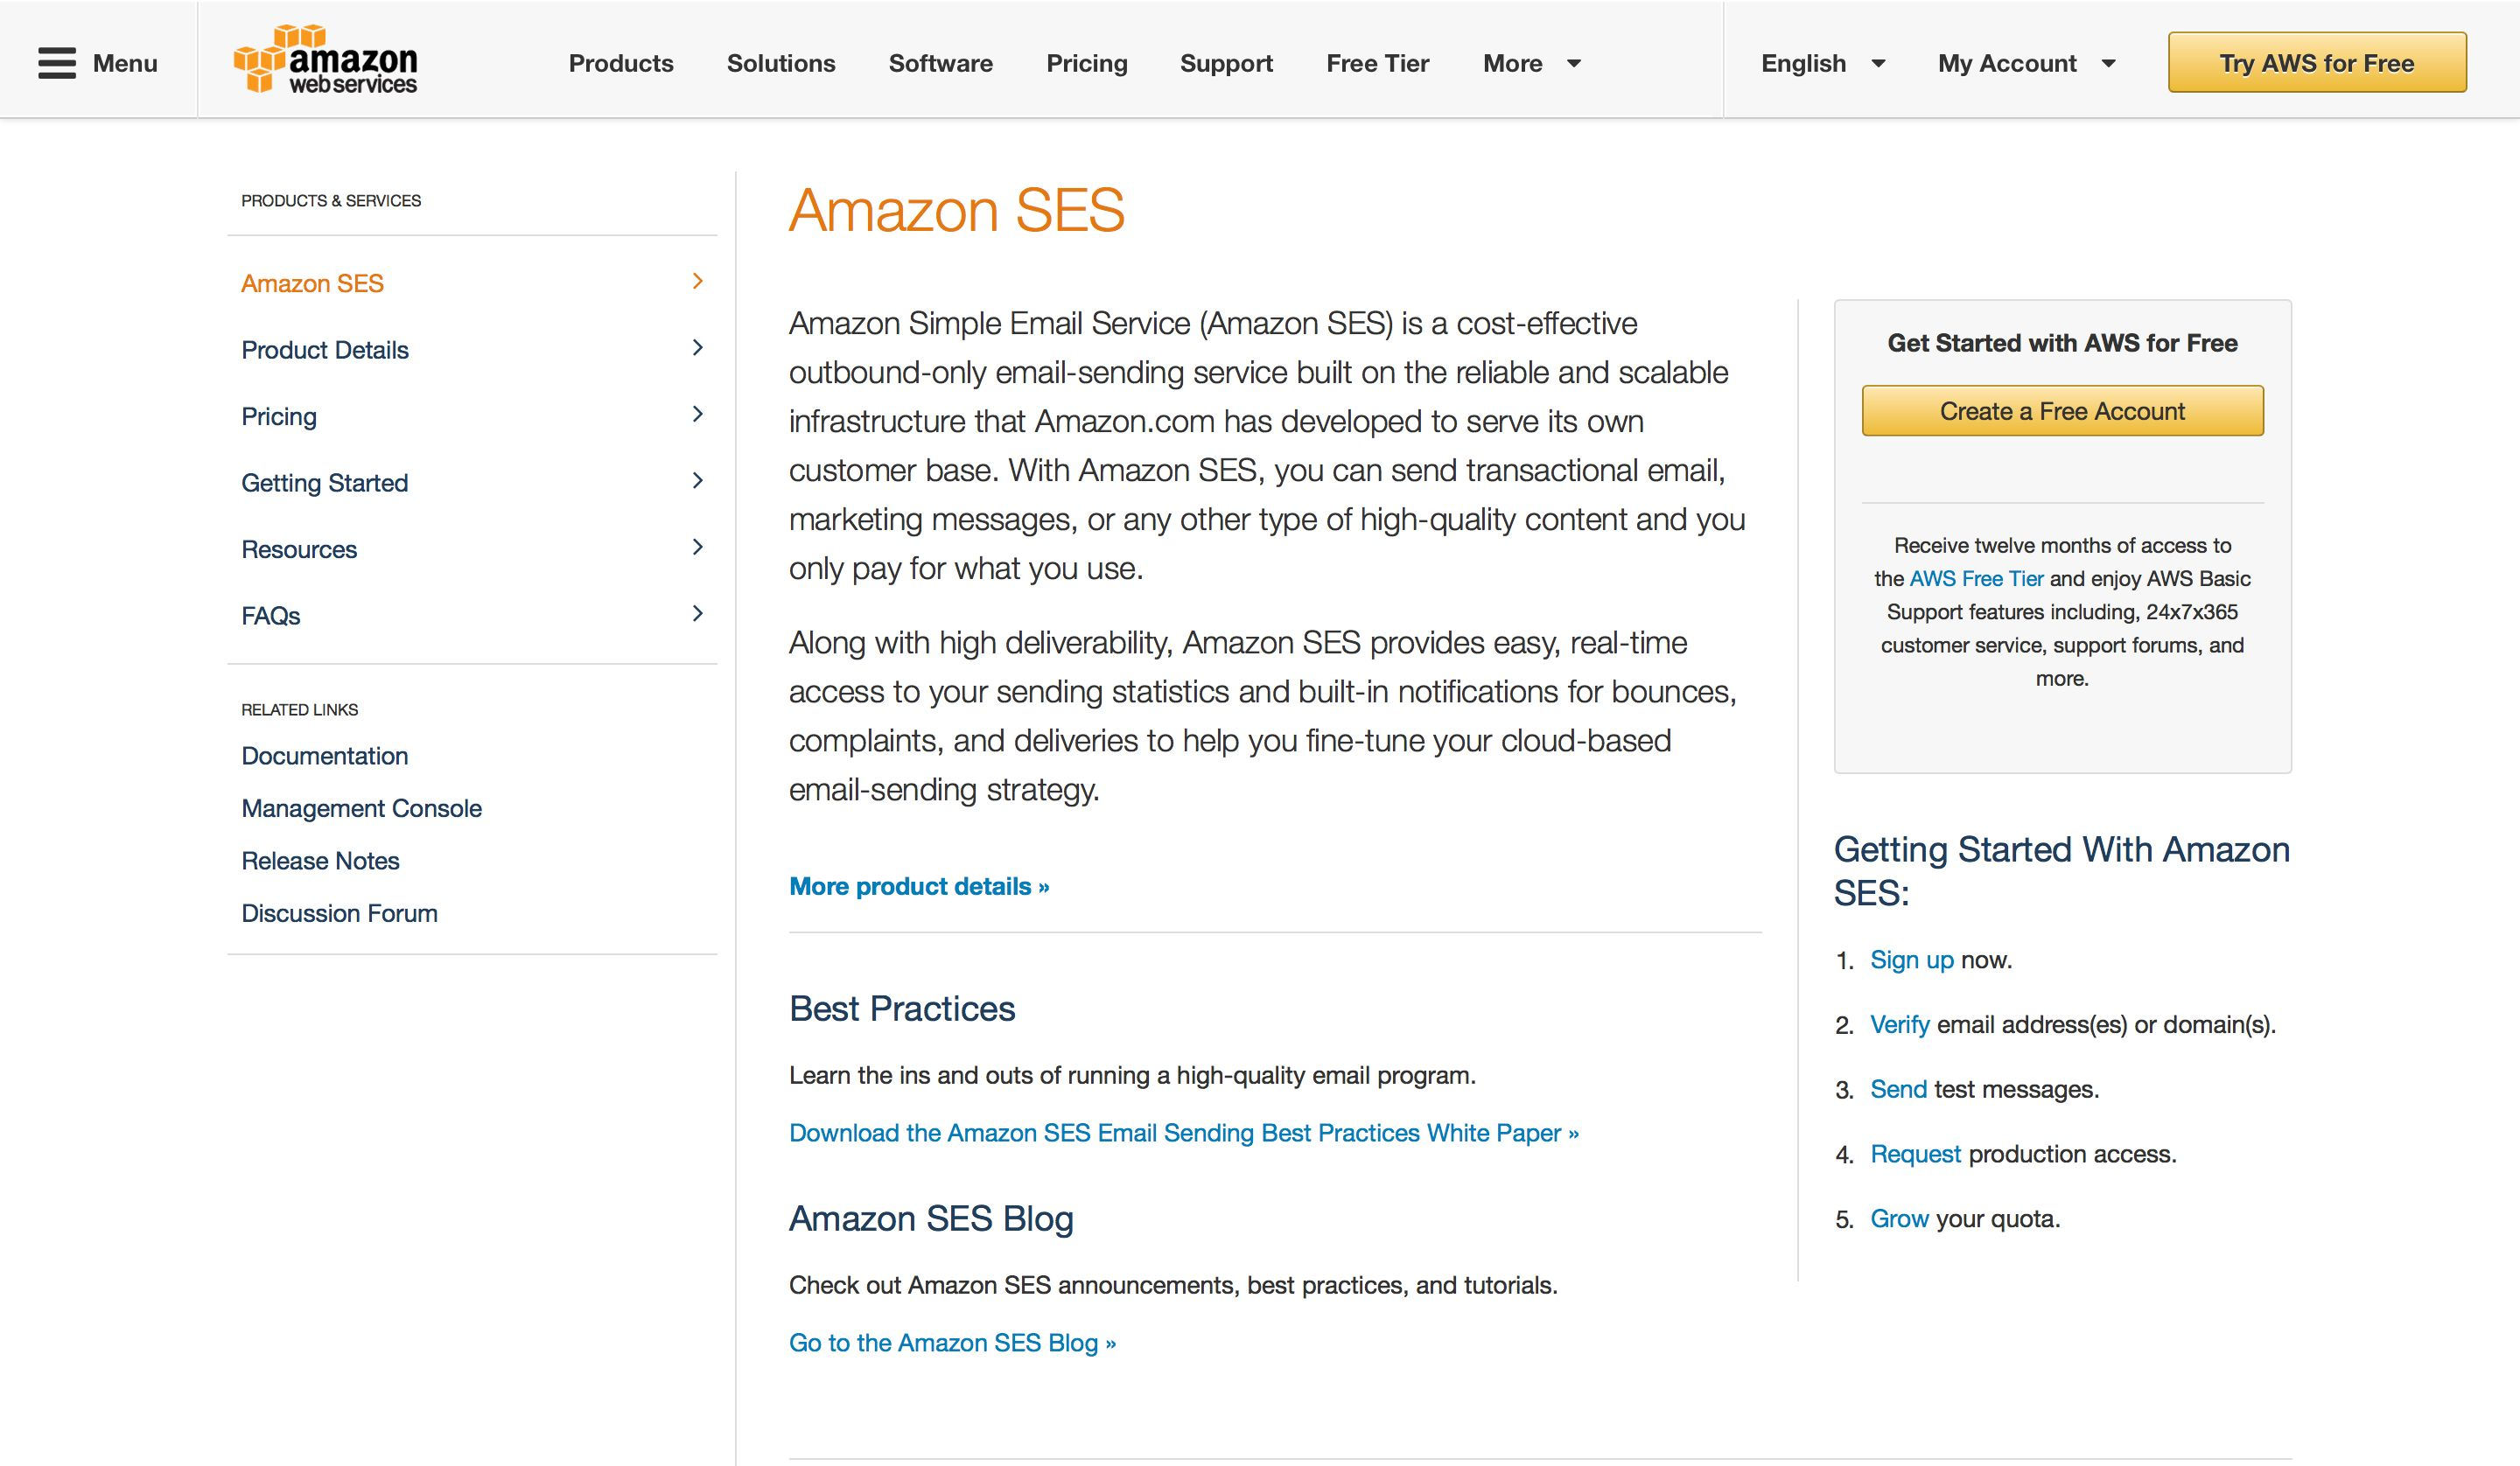 Amazon SES - Features, Pricing, Alternatives, and More | Zapier